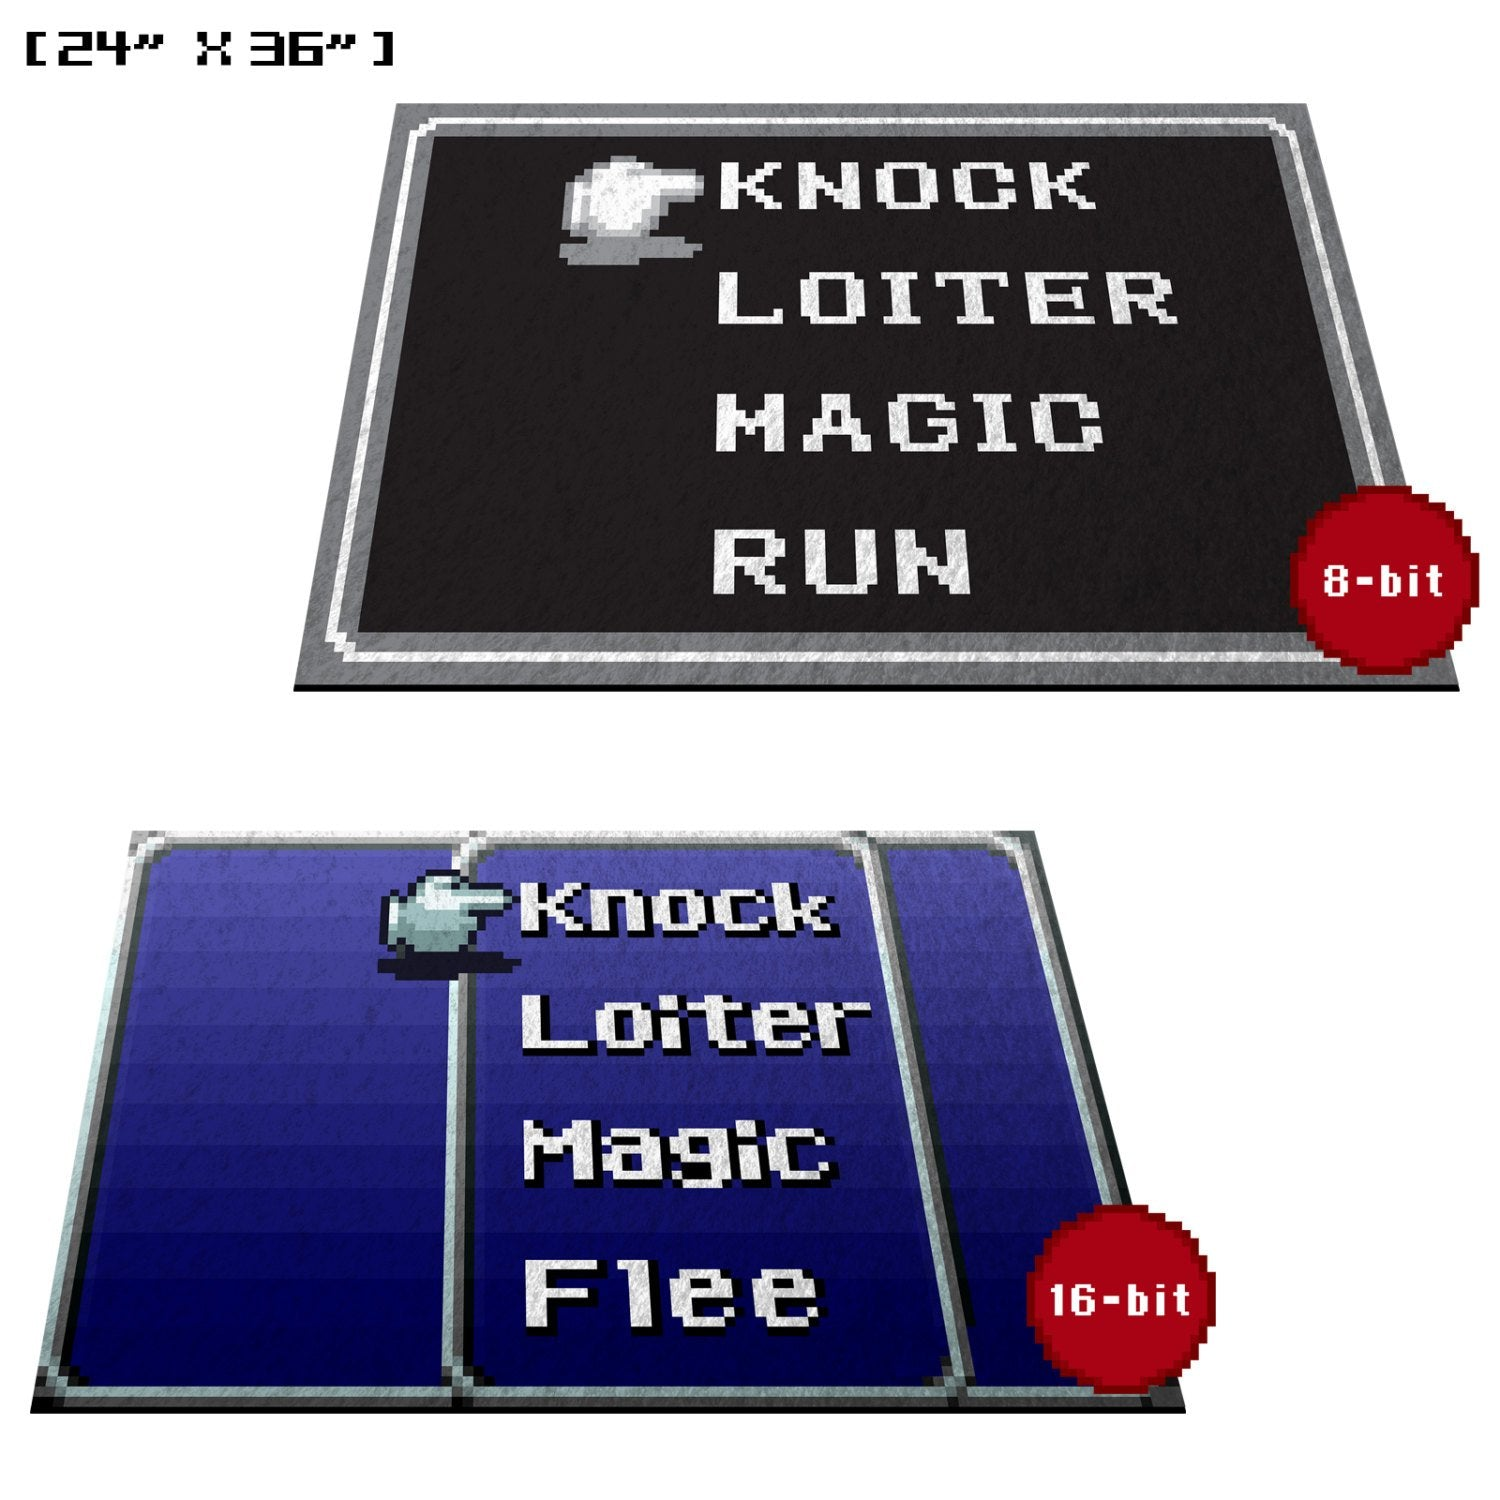 "Retro RPG Menu 24""x 36"" Doormat Welcome Floormat"